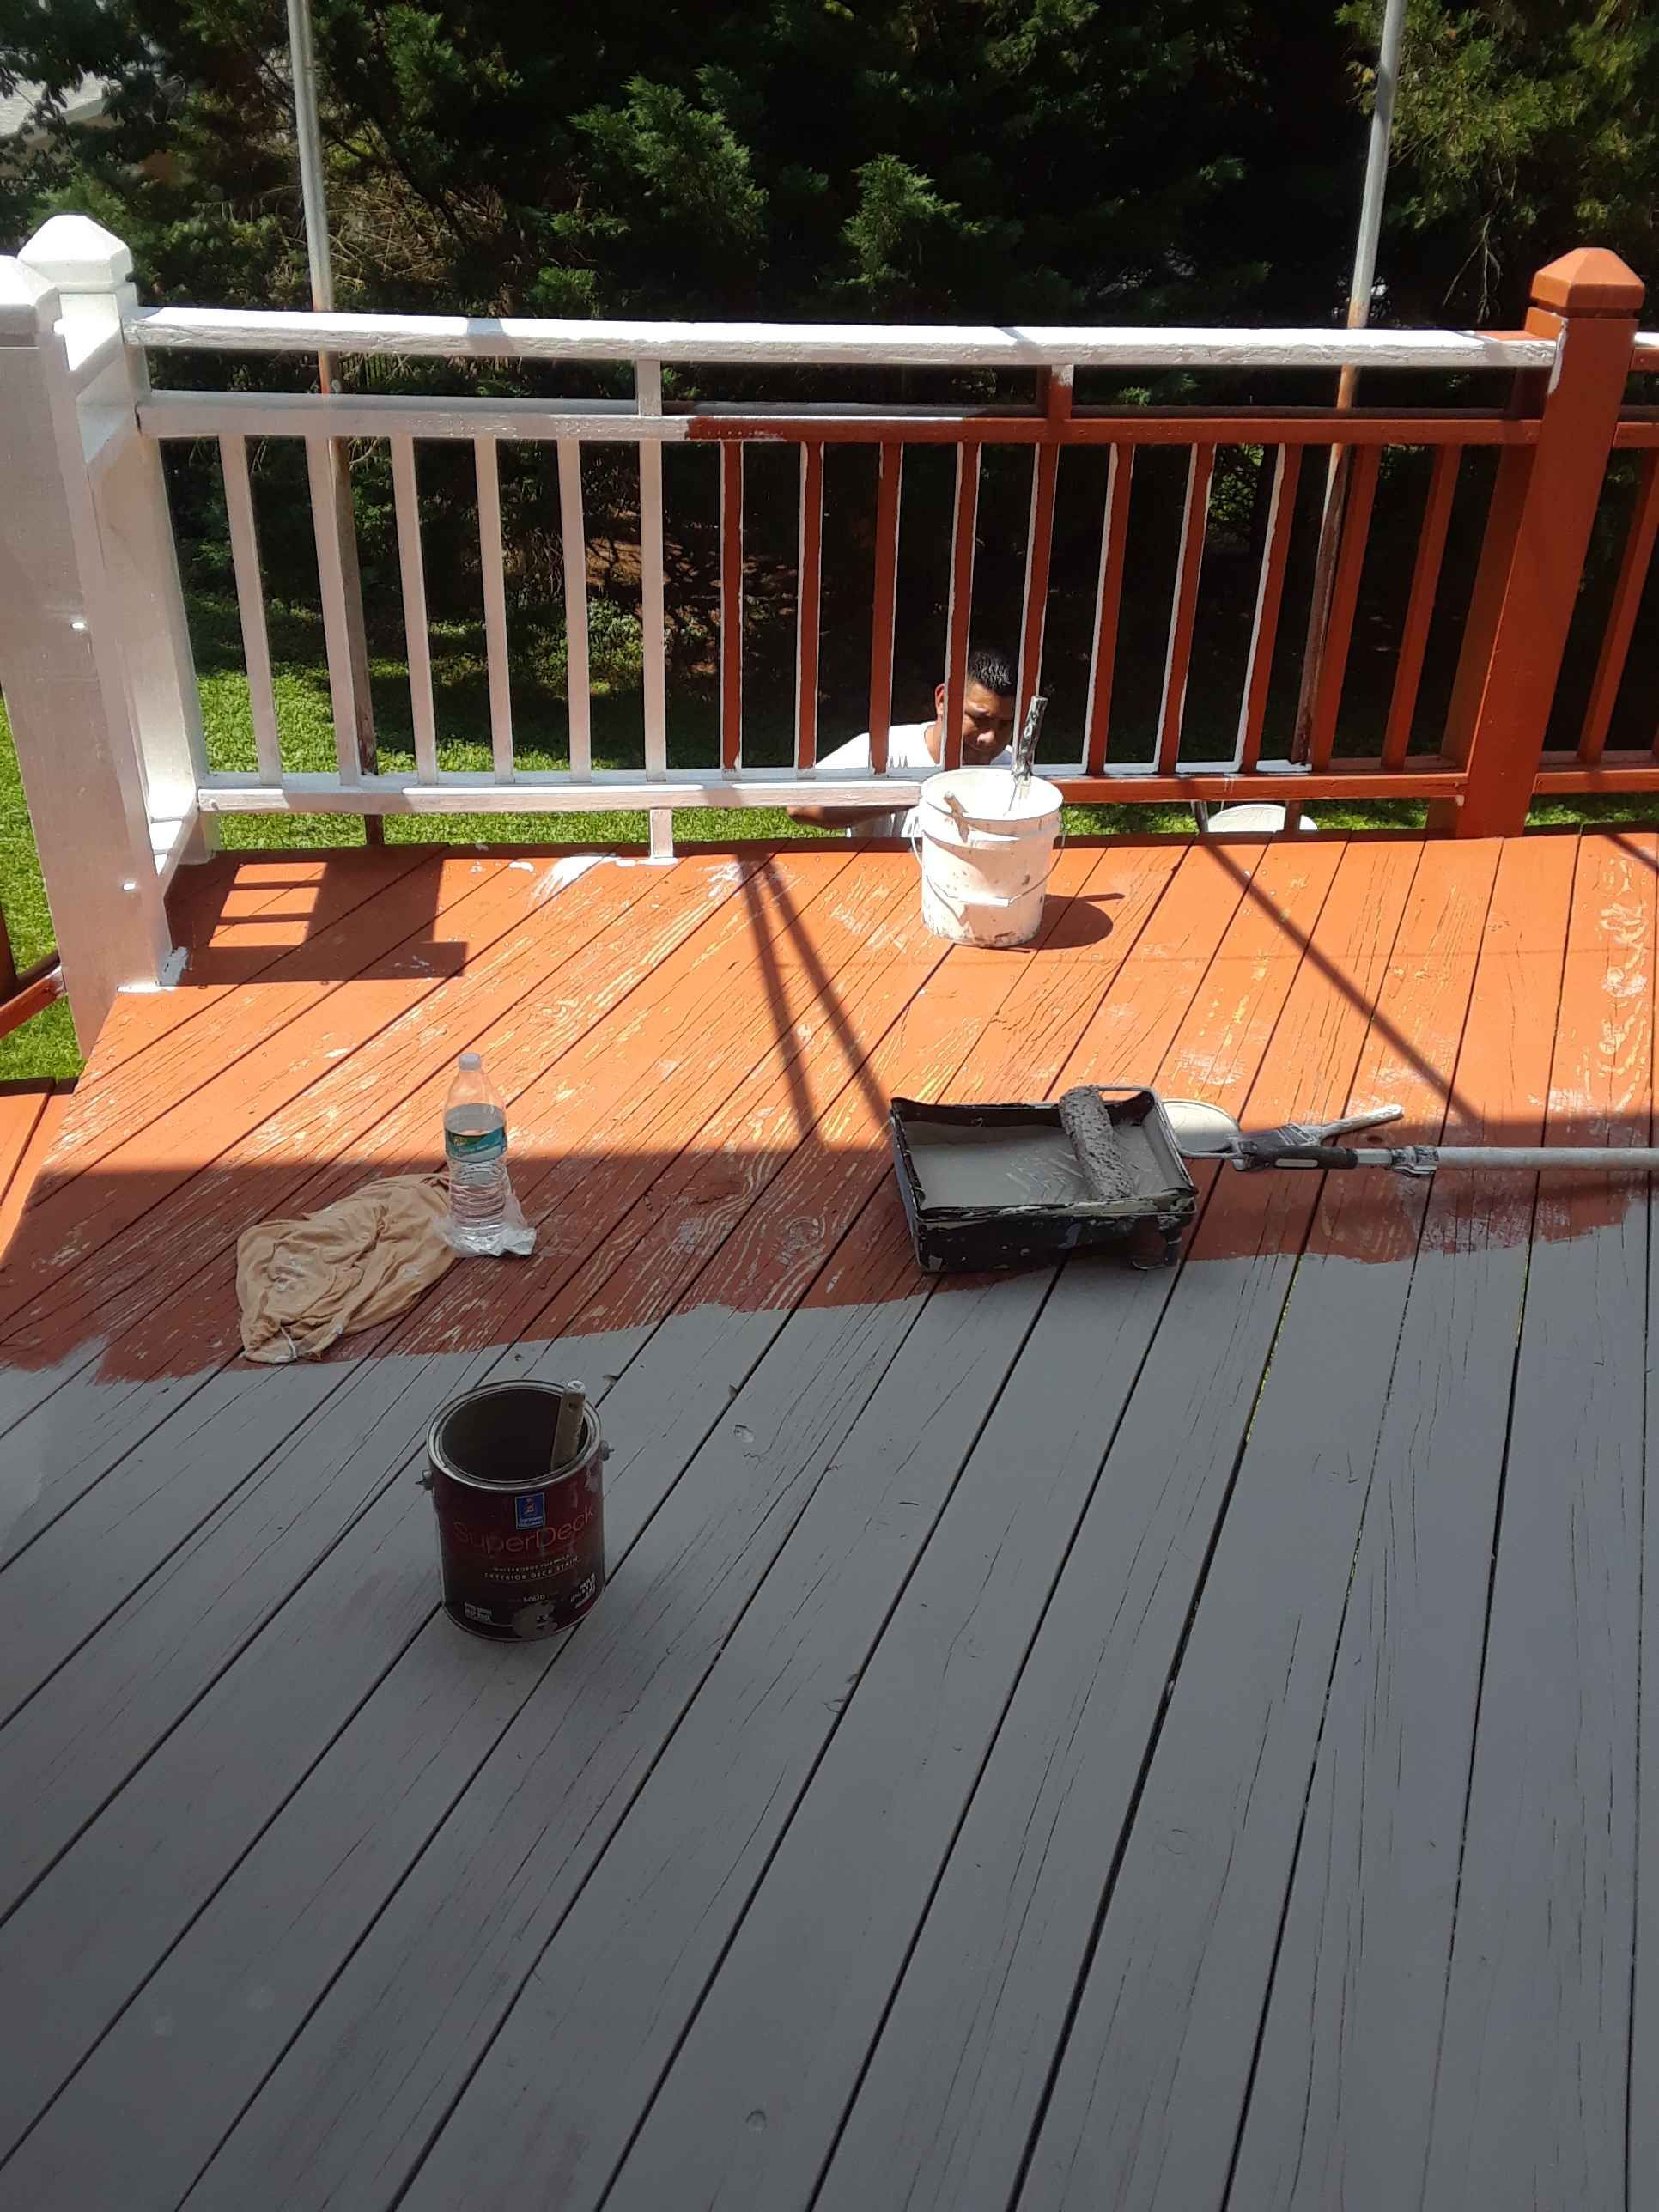 Sherwin Williams Stain Color Chart 2019 Sherwin Williams Stain Sherwin Williams Stain Colors Staining Deck